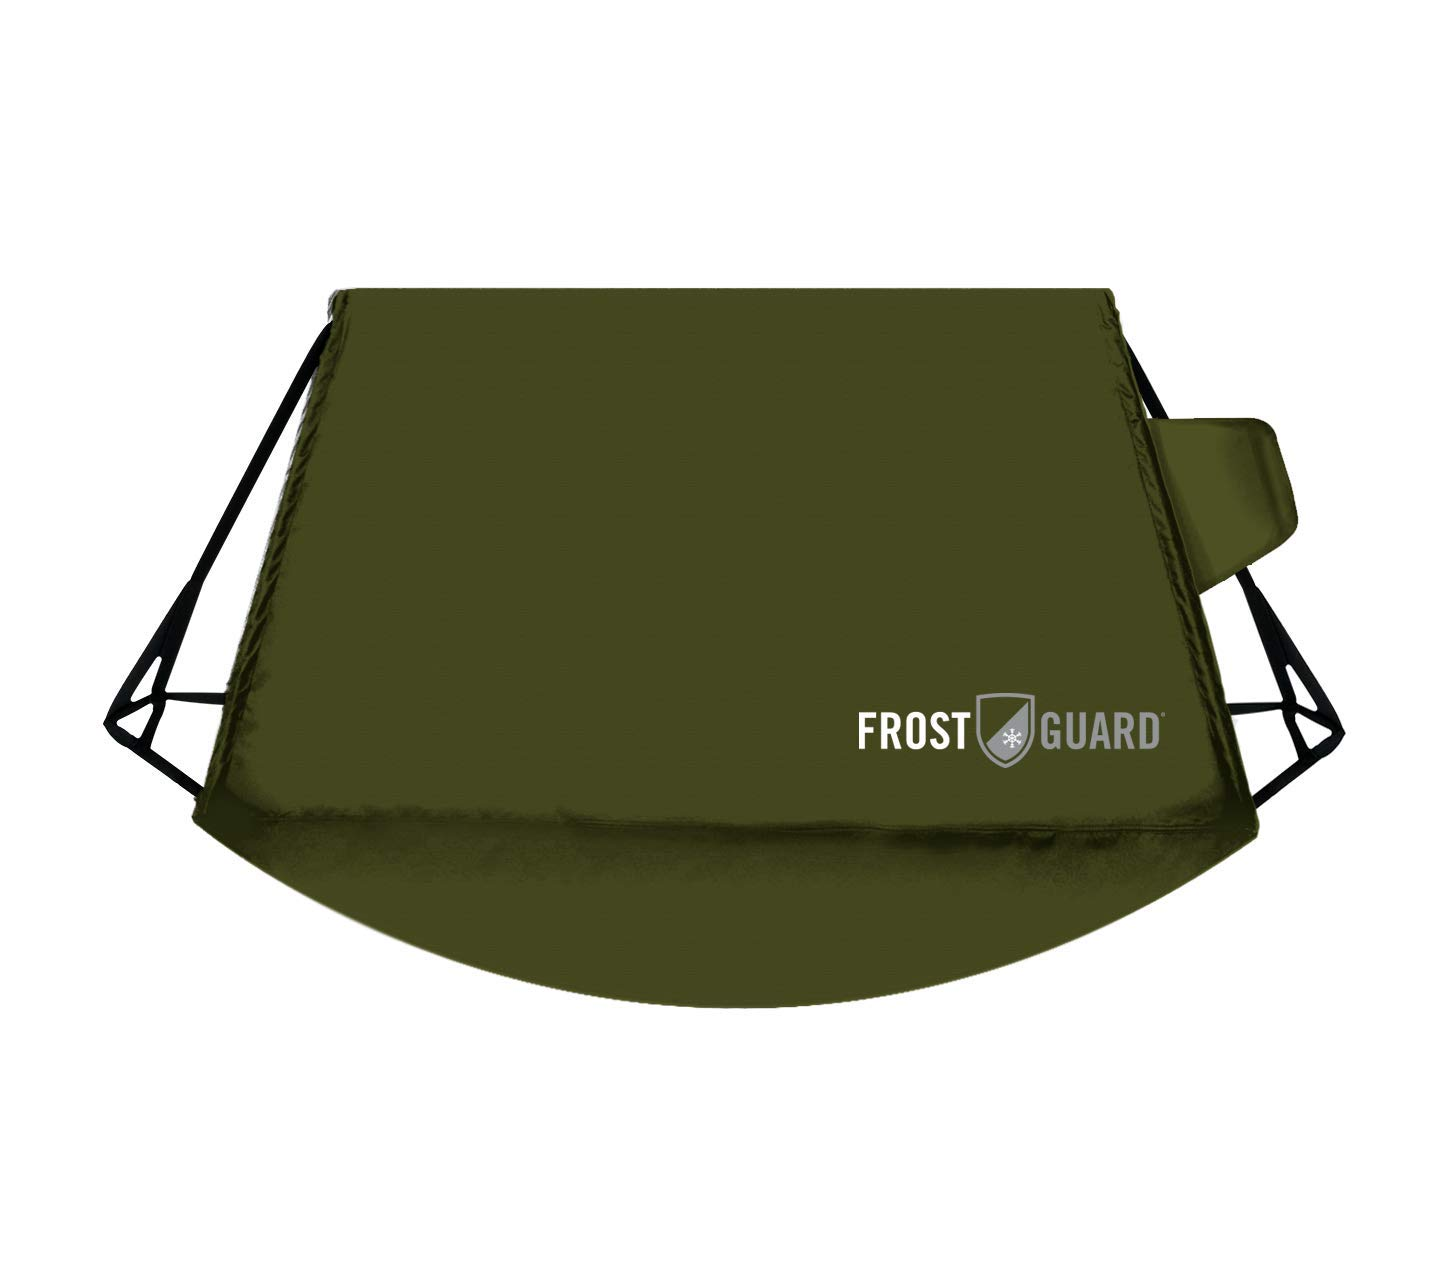 FrostGuard Signature XL   Premium Winter Windshield Cover with Security Panel and Wiper Cover, Protects Viewing Area from Snow, Ice and Frost, Fits Most Cars and SUVs (Black XL 68' x 41') Fits Most Cars and SUVs (Black XL 68 x 41)